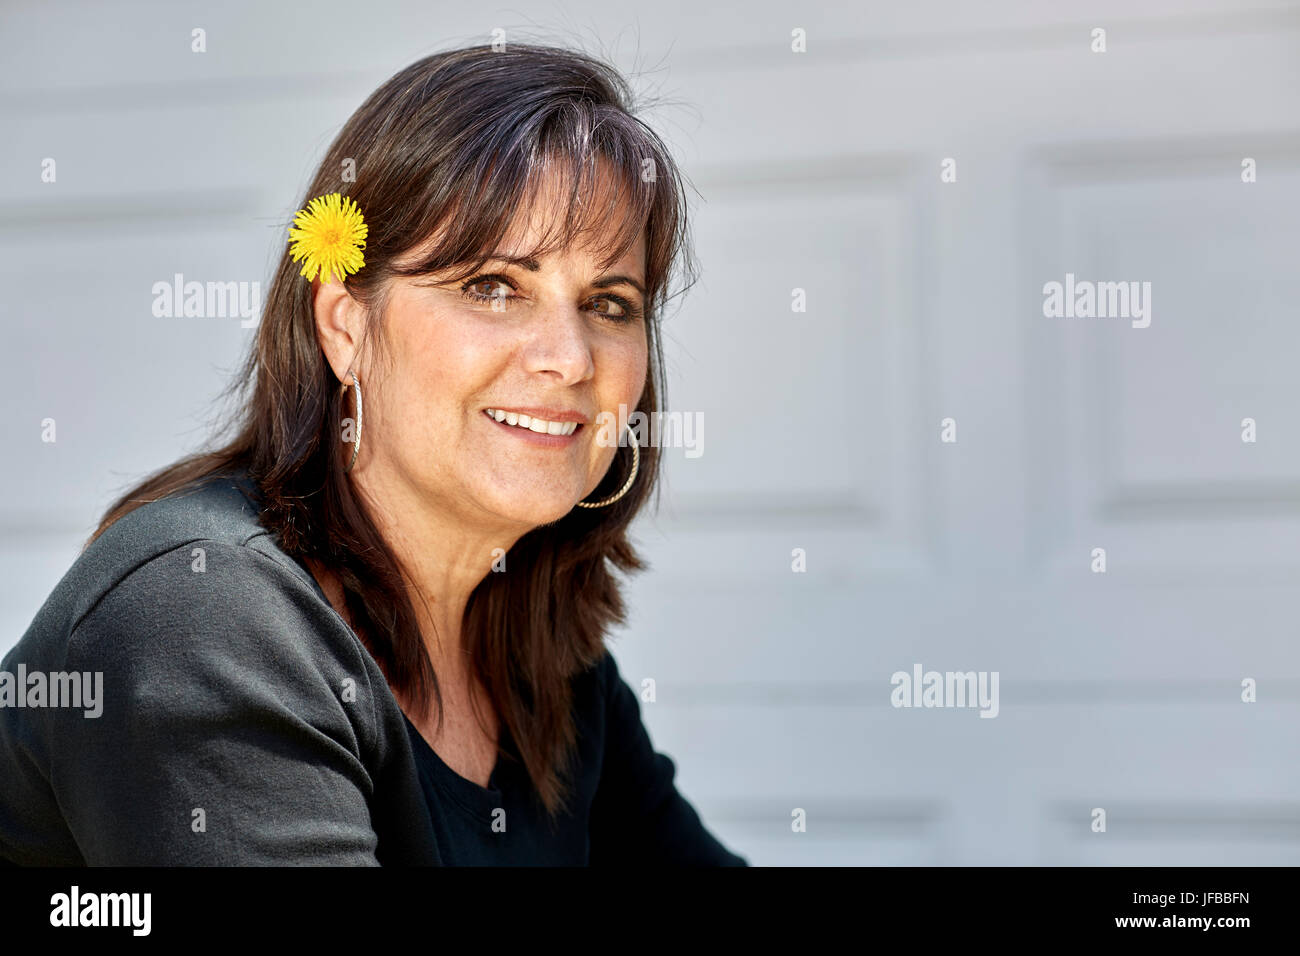 Happy middle aged woman smiling looking towards  camera with a yellow dandelion flower in her hair tucked behind - Stock Image